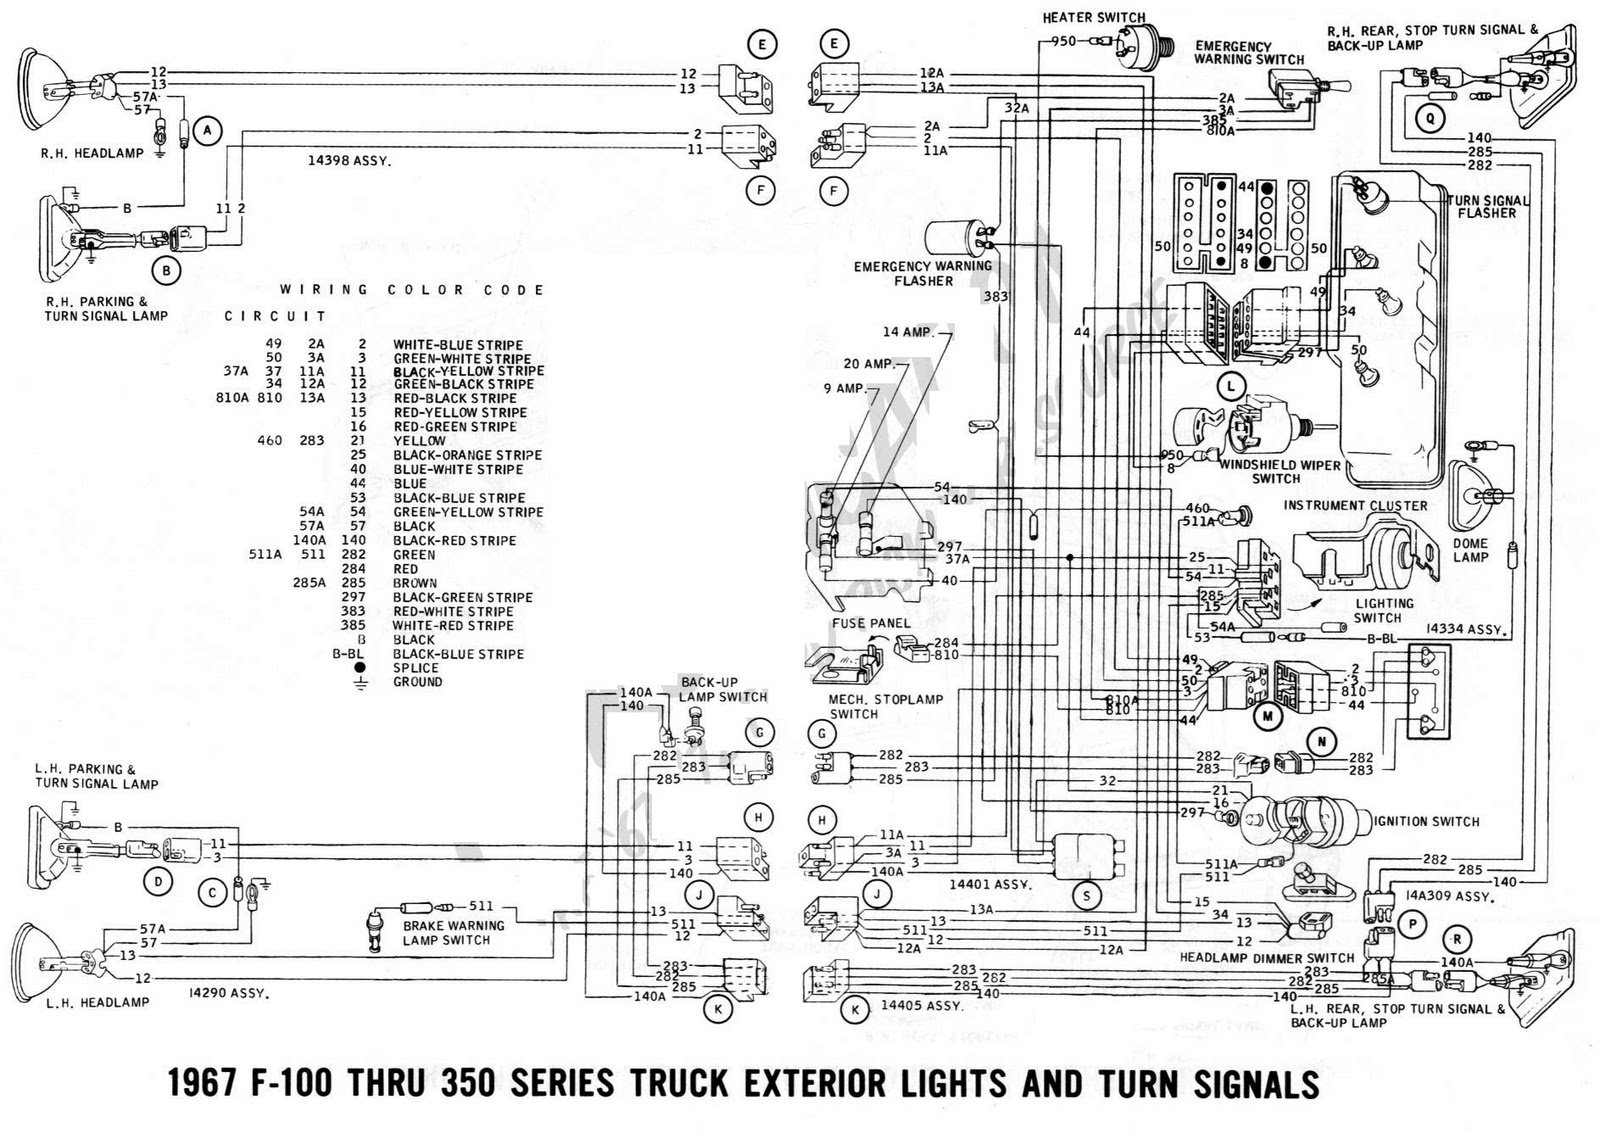 1967 F100 Wiring Diagram - Engine Mechanical Components F Ignition Wiring Diagram on